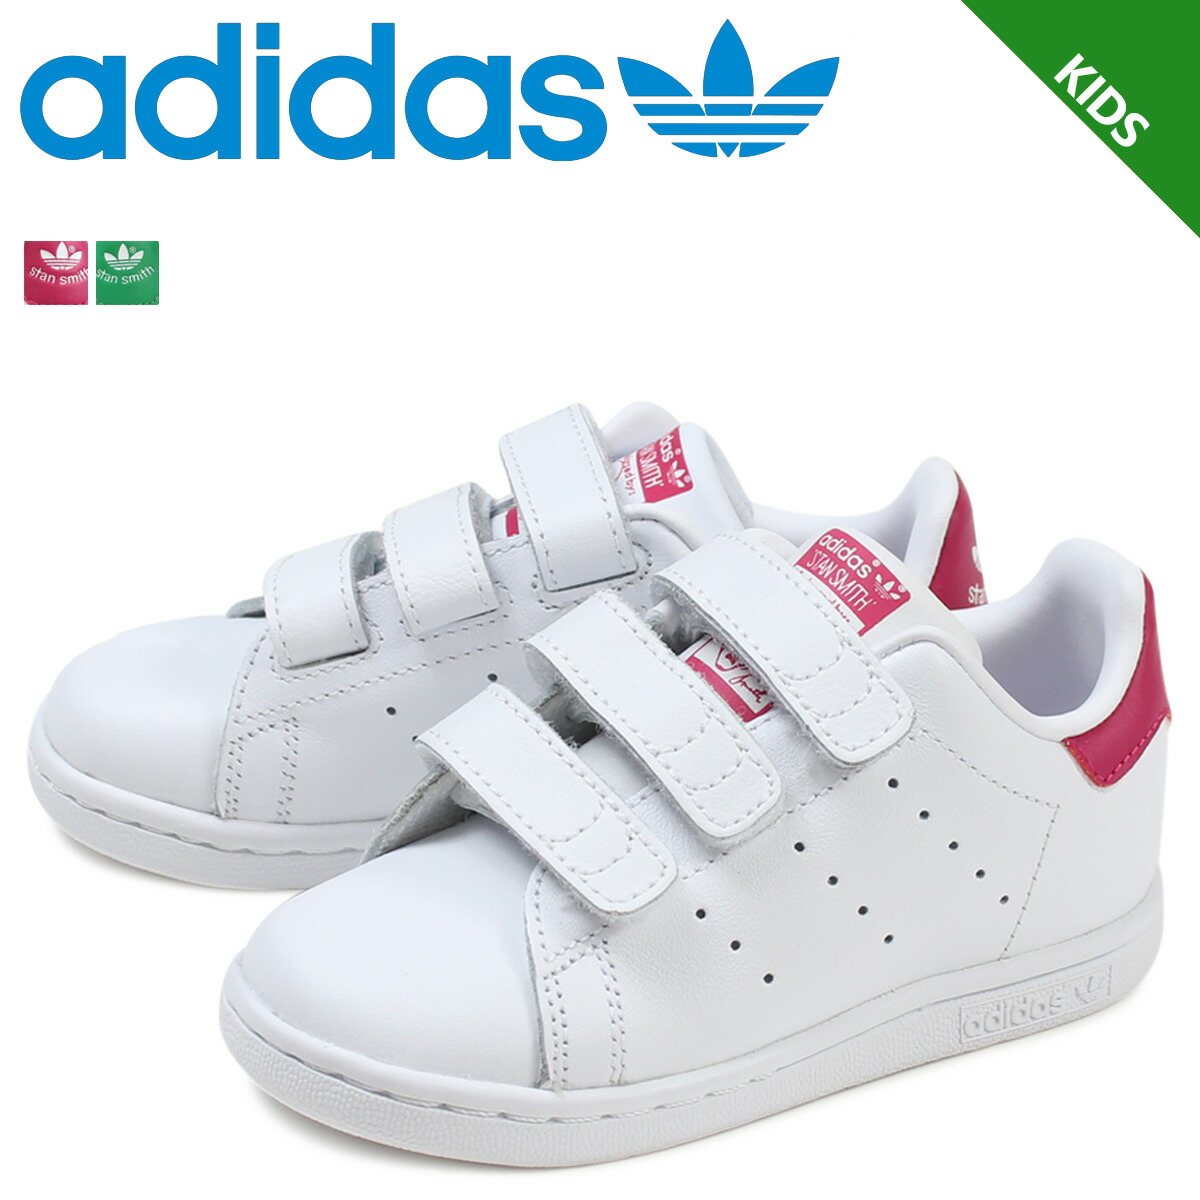 huge discount 57462 eee62 Details about Adidas Originals Stan Smith Sneakers Kids B32704 White/Bold  Pink